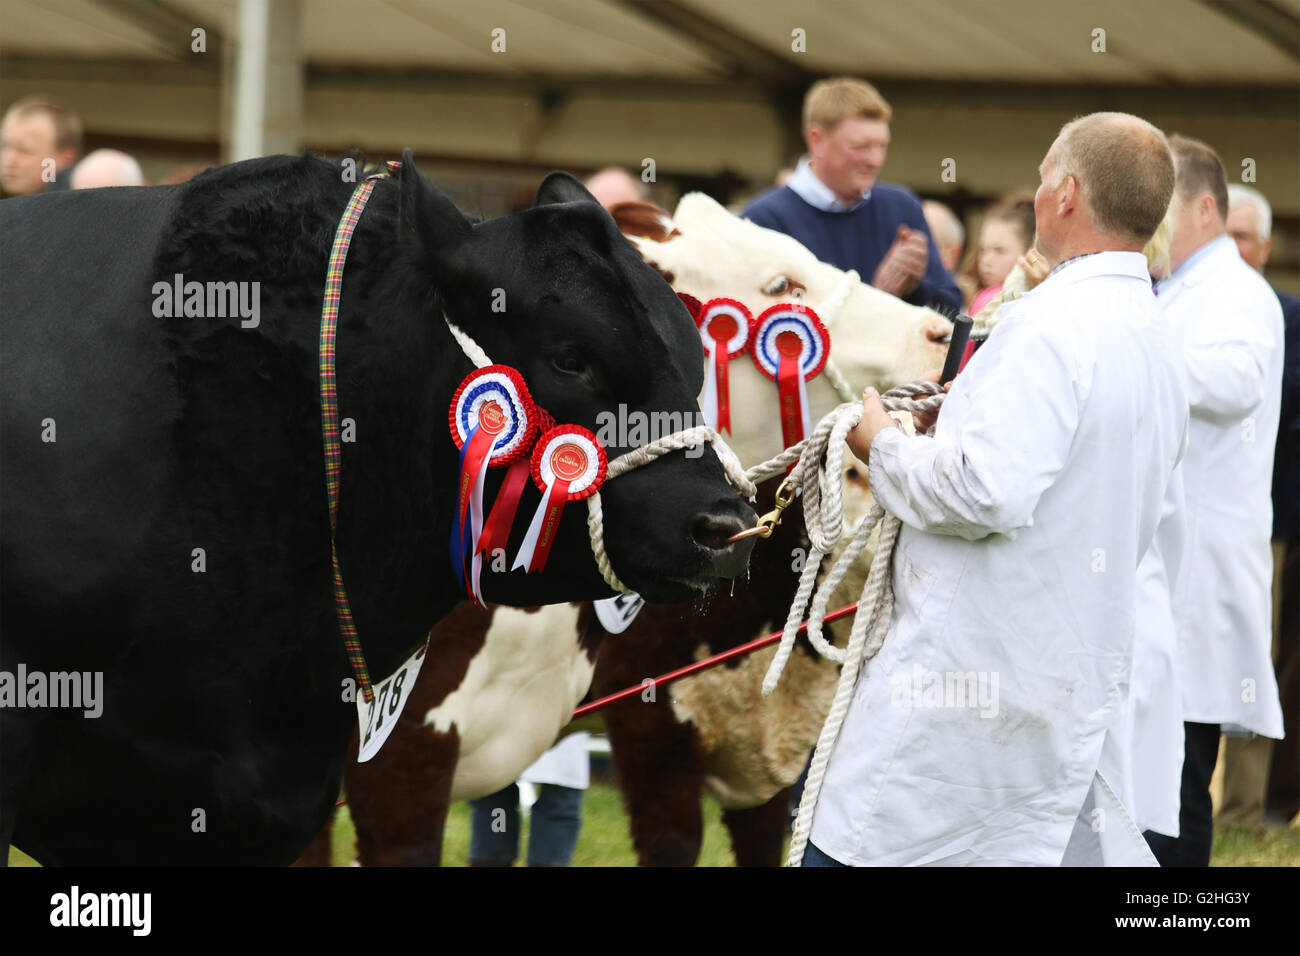 Bywell, England - May 30, 2016: Cattle in the judging ring at the Northumberland County Show at Bywell in Northumberland, - Stock Image